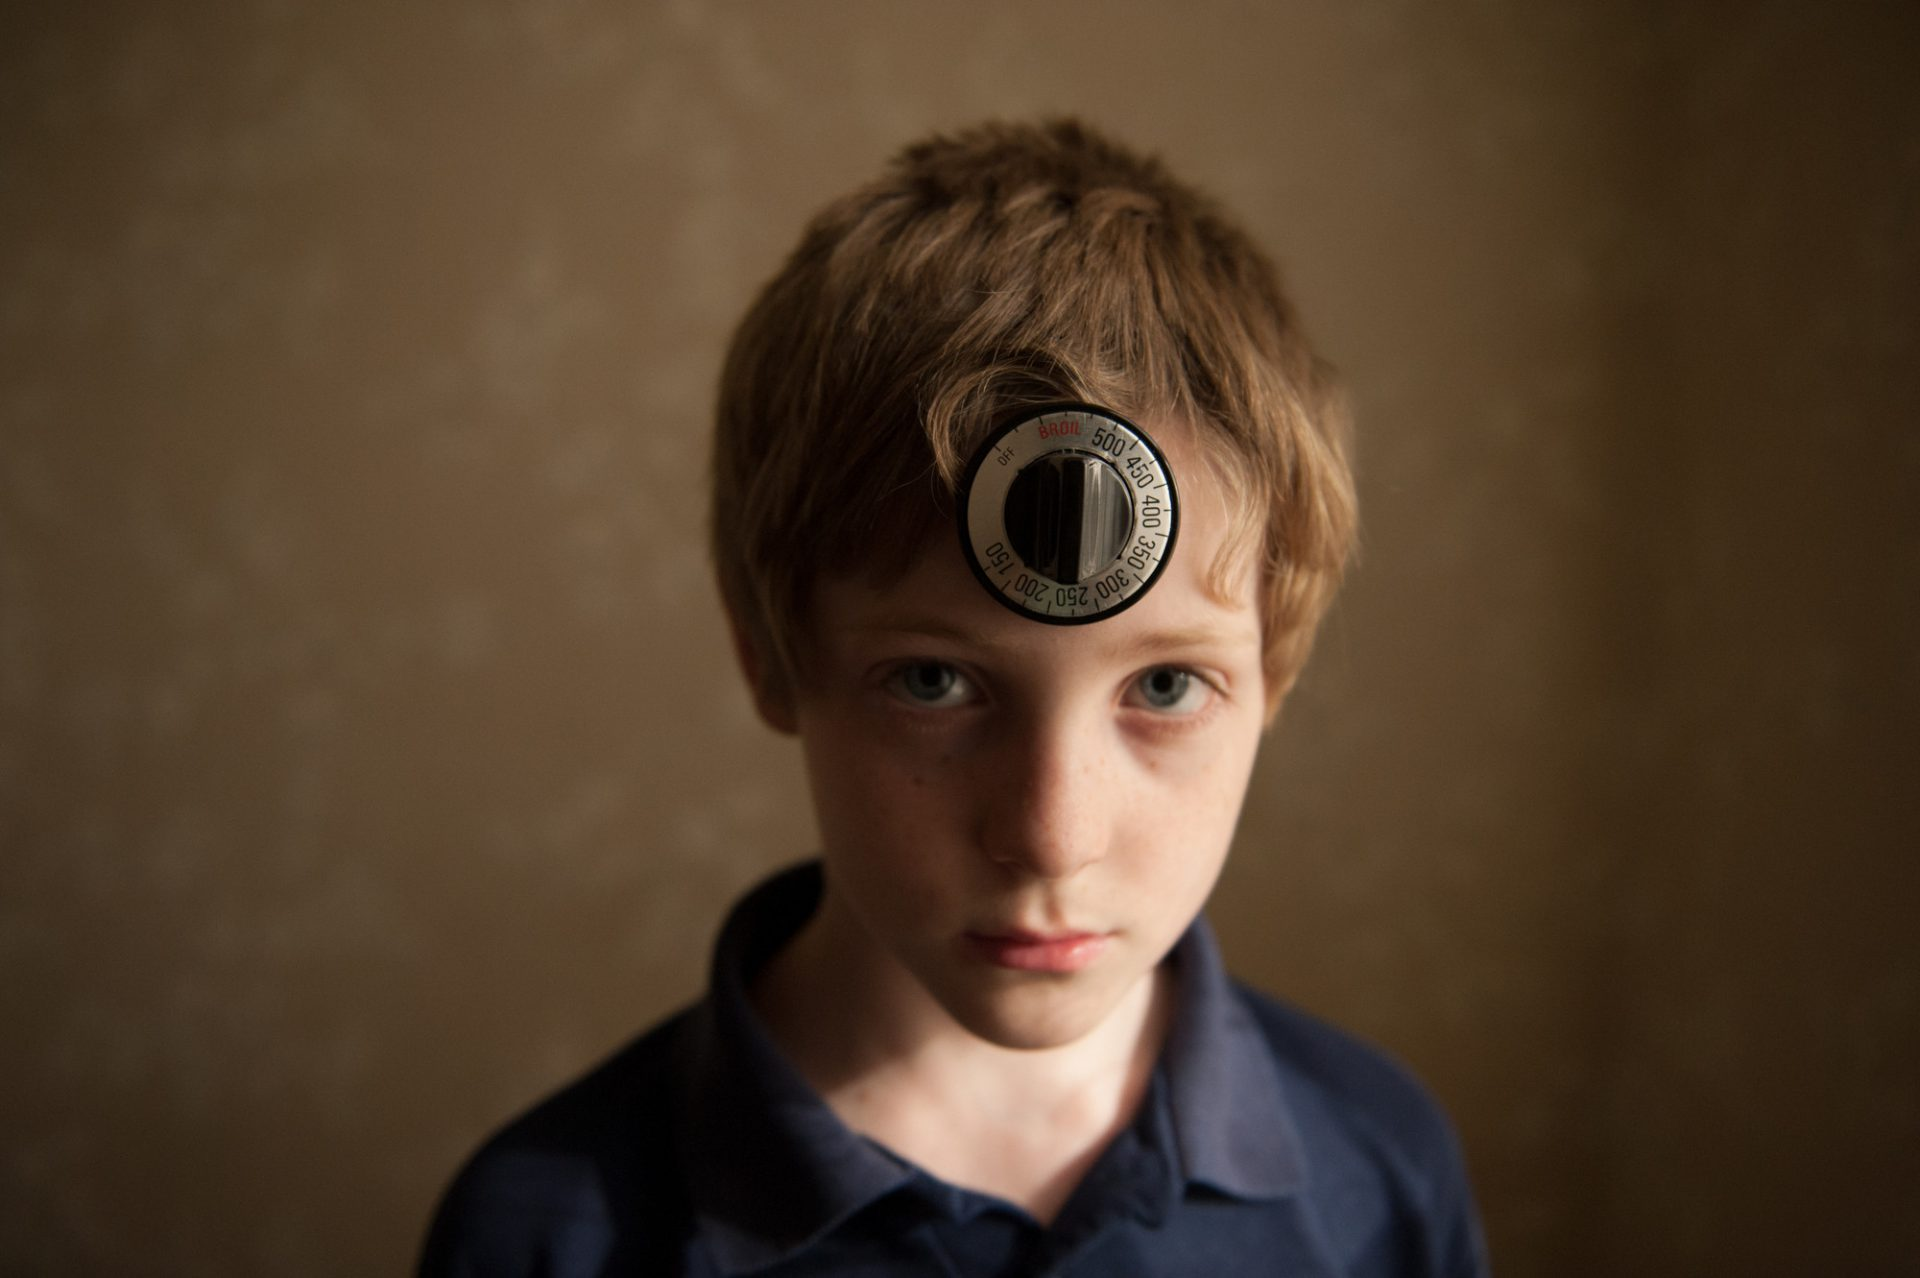 Photo: A portrait of a young boy with an oven knob on his forehead, Lincoln, Nebraska.